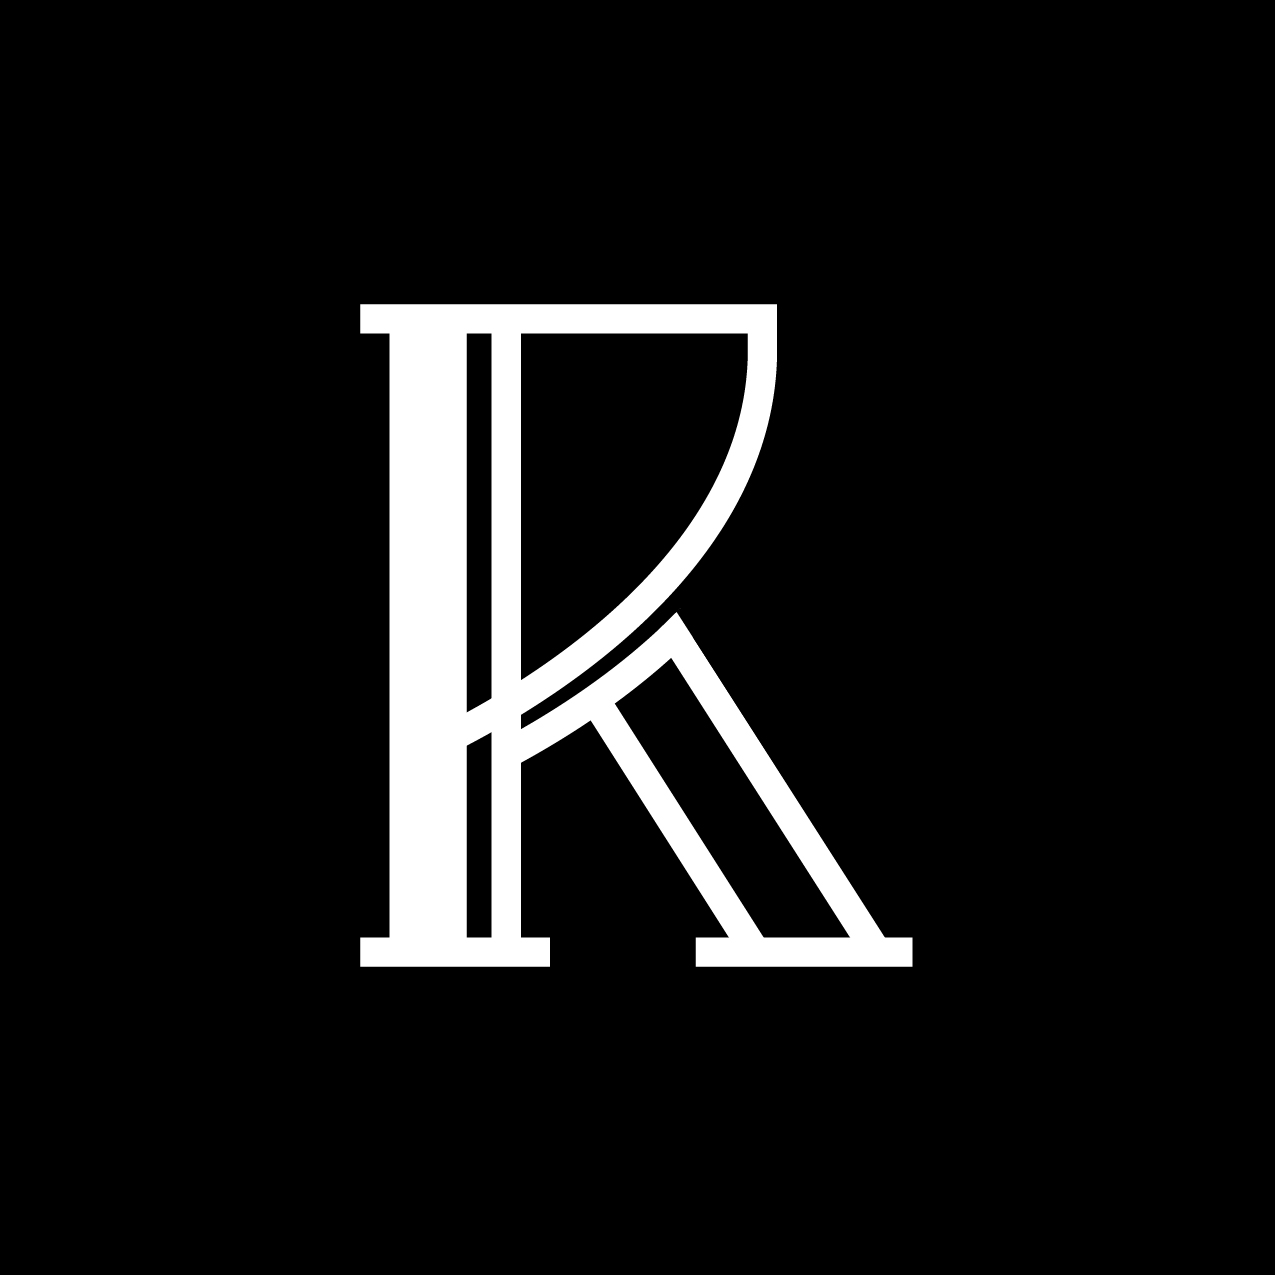 Letter R9 Design by Furia